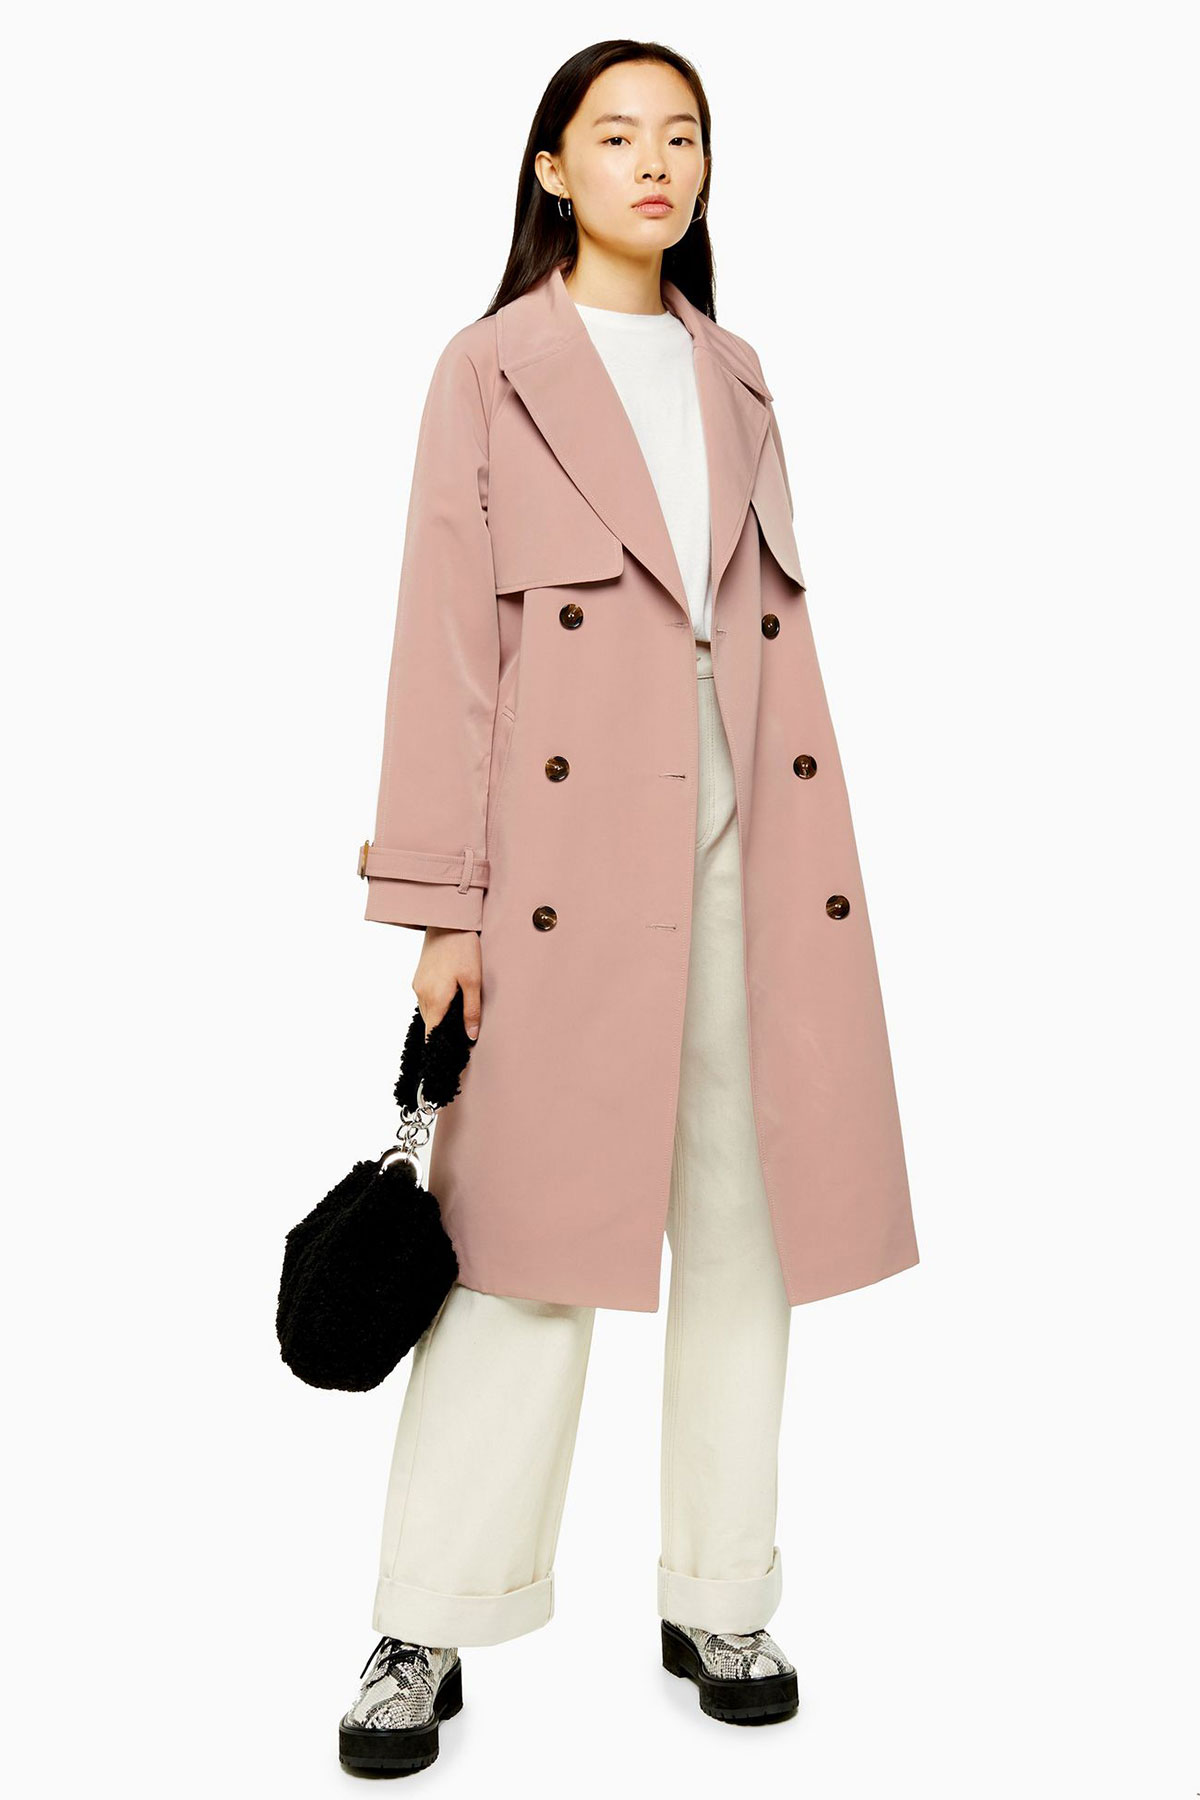 Blake Lively Get the Look Pink Trench Dress